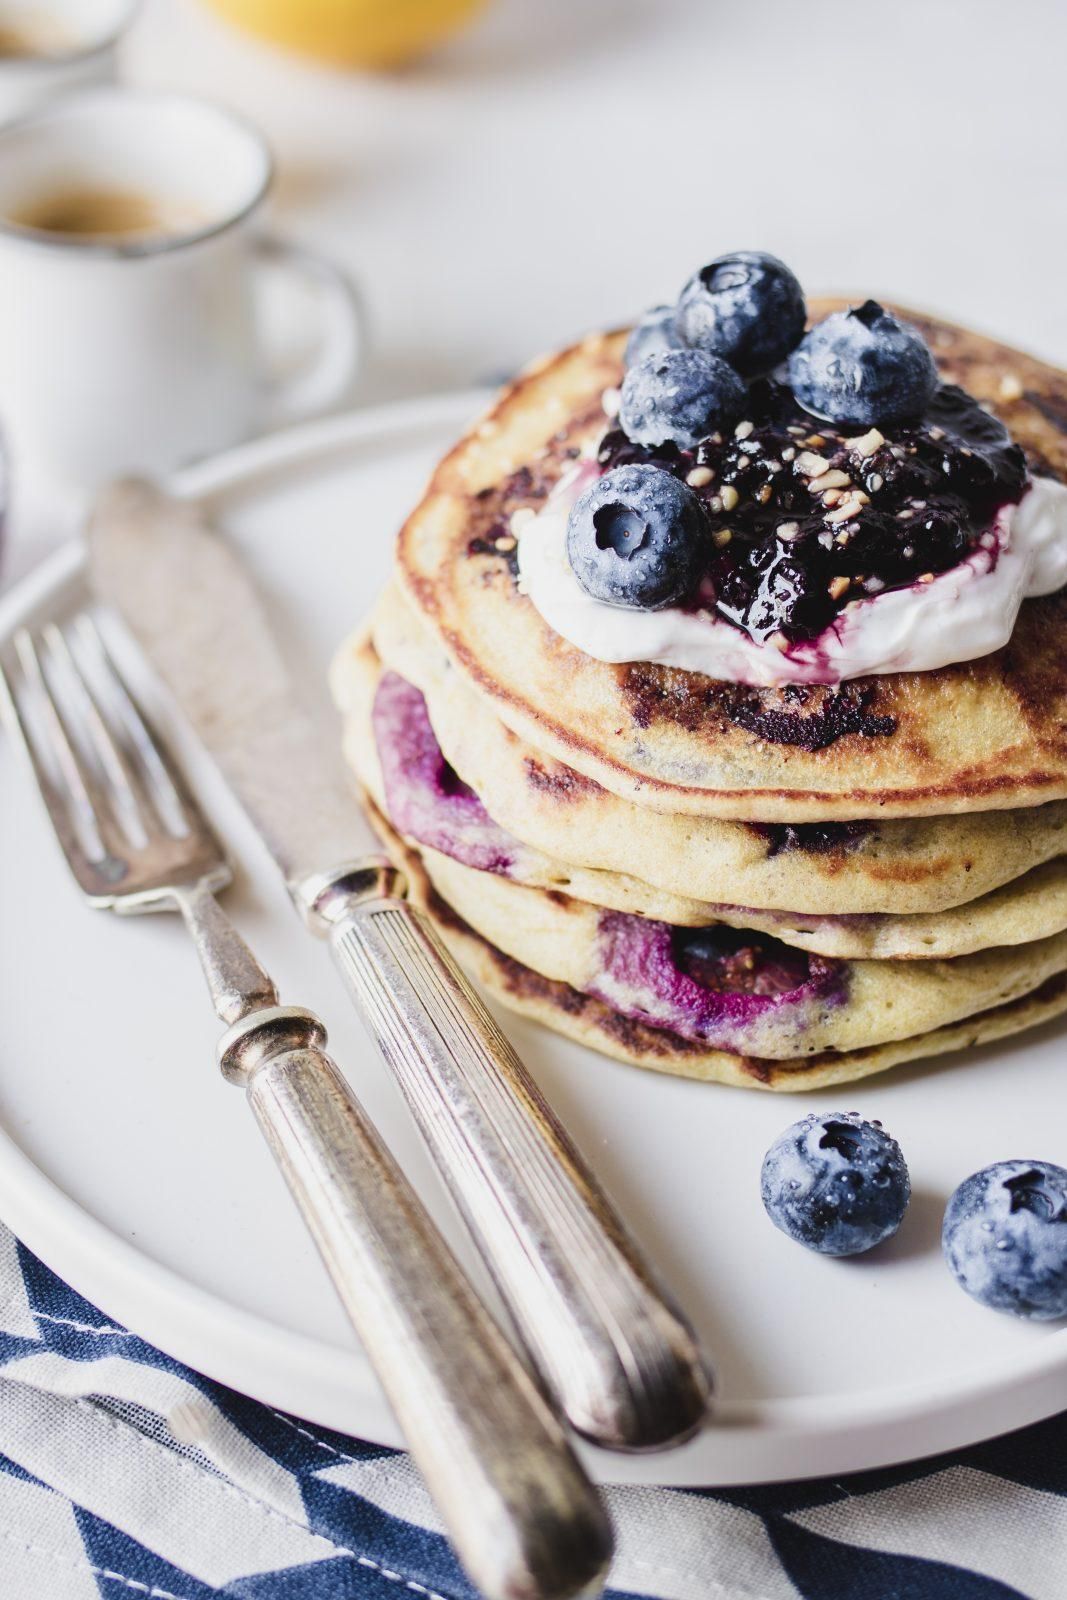 Pancake ai mirtilli e yogurt greco